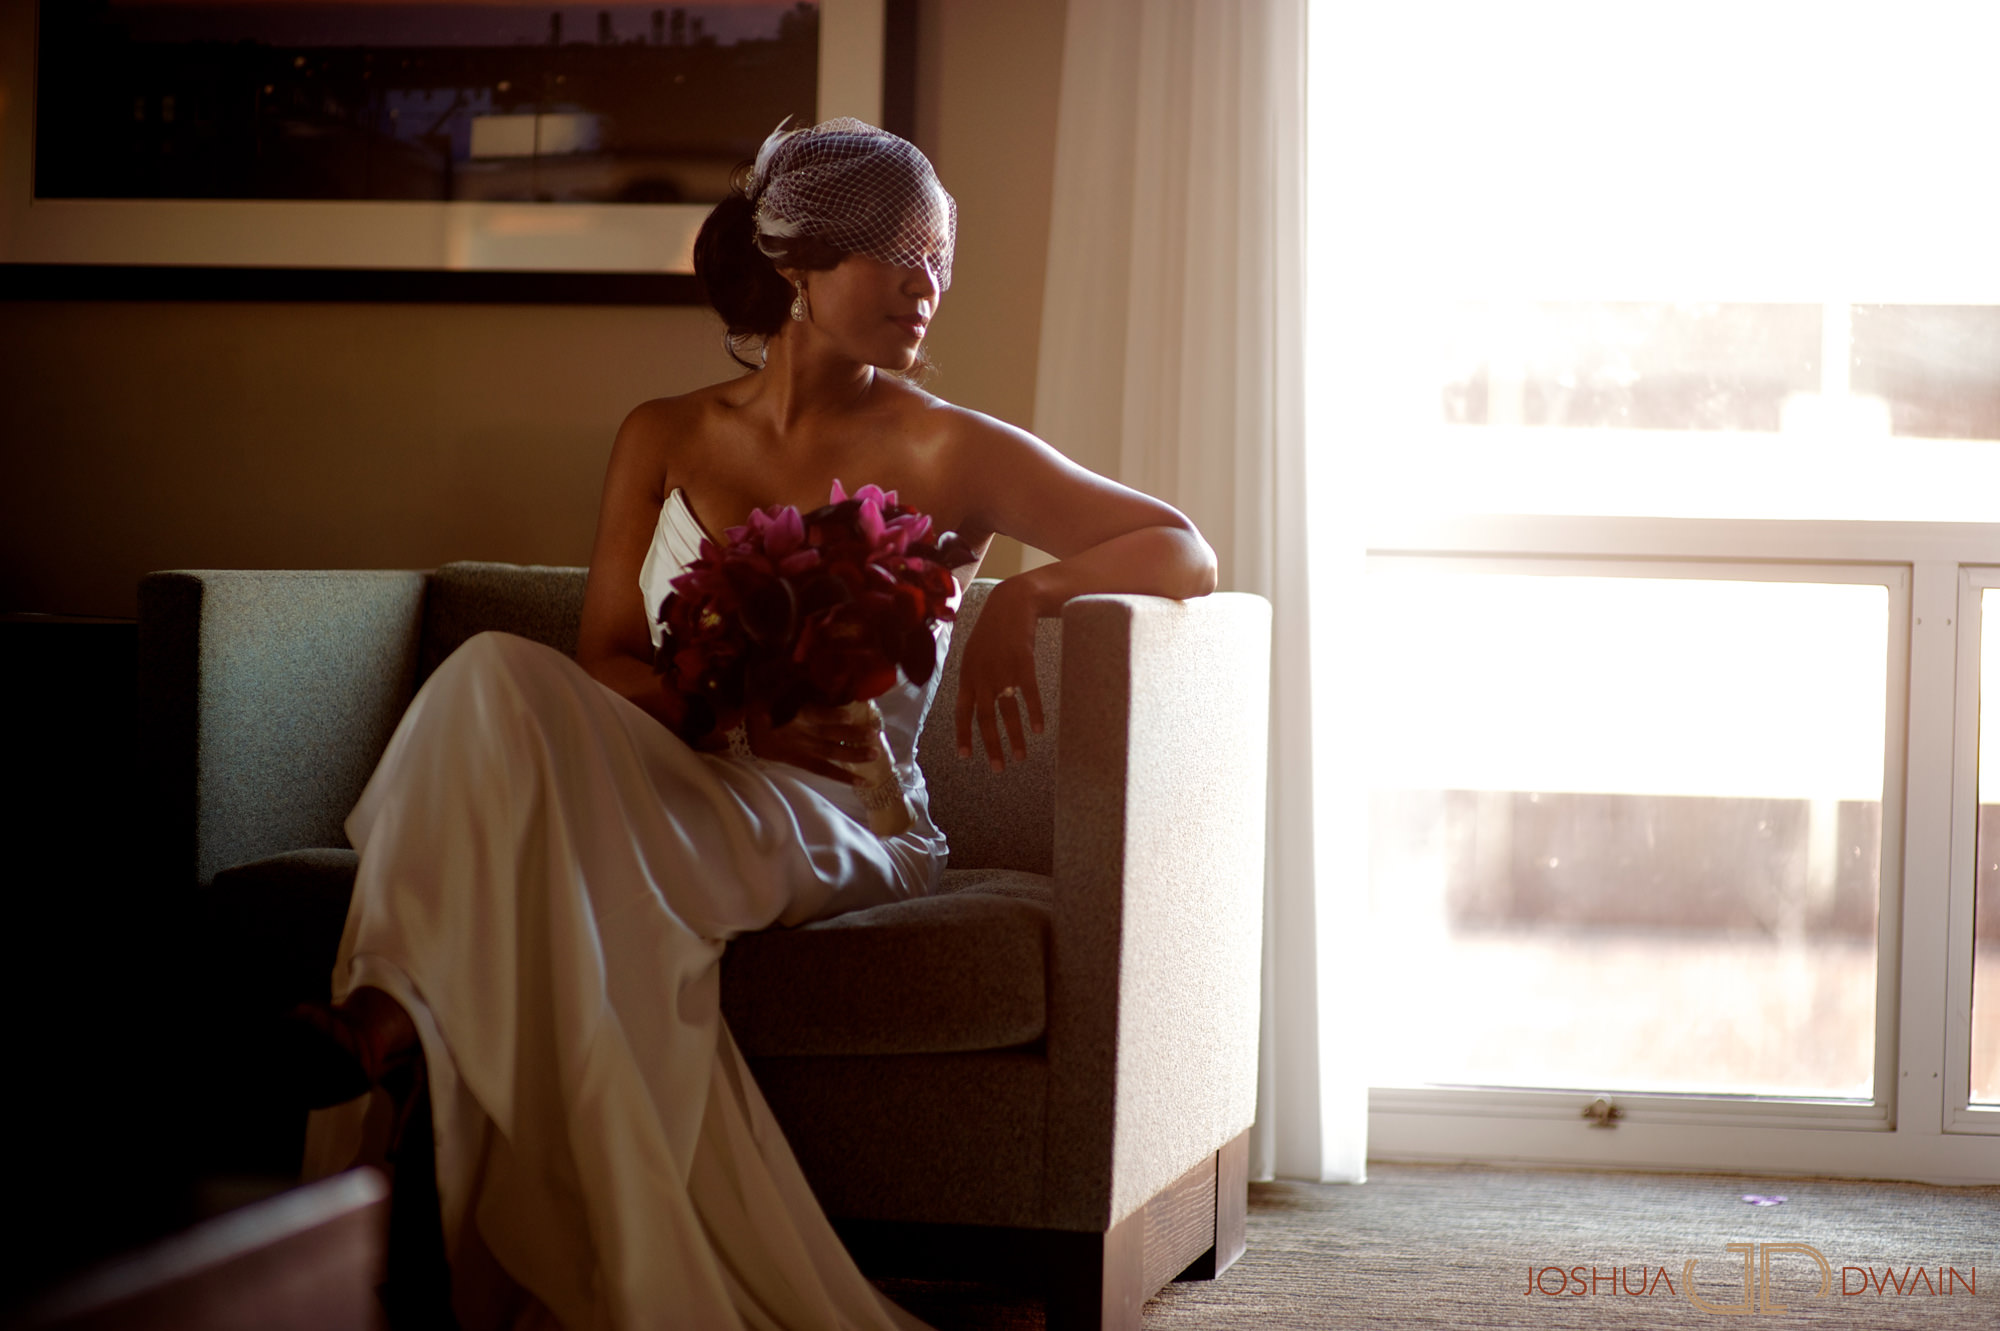 carol-shiloh-008-the-palace-somerset-new-jerseywedding-photographer-joshua-dwain-2011-11-25_cs_281